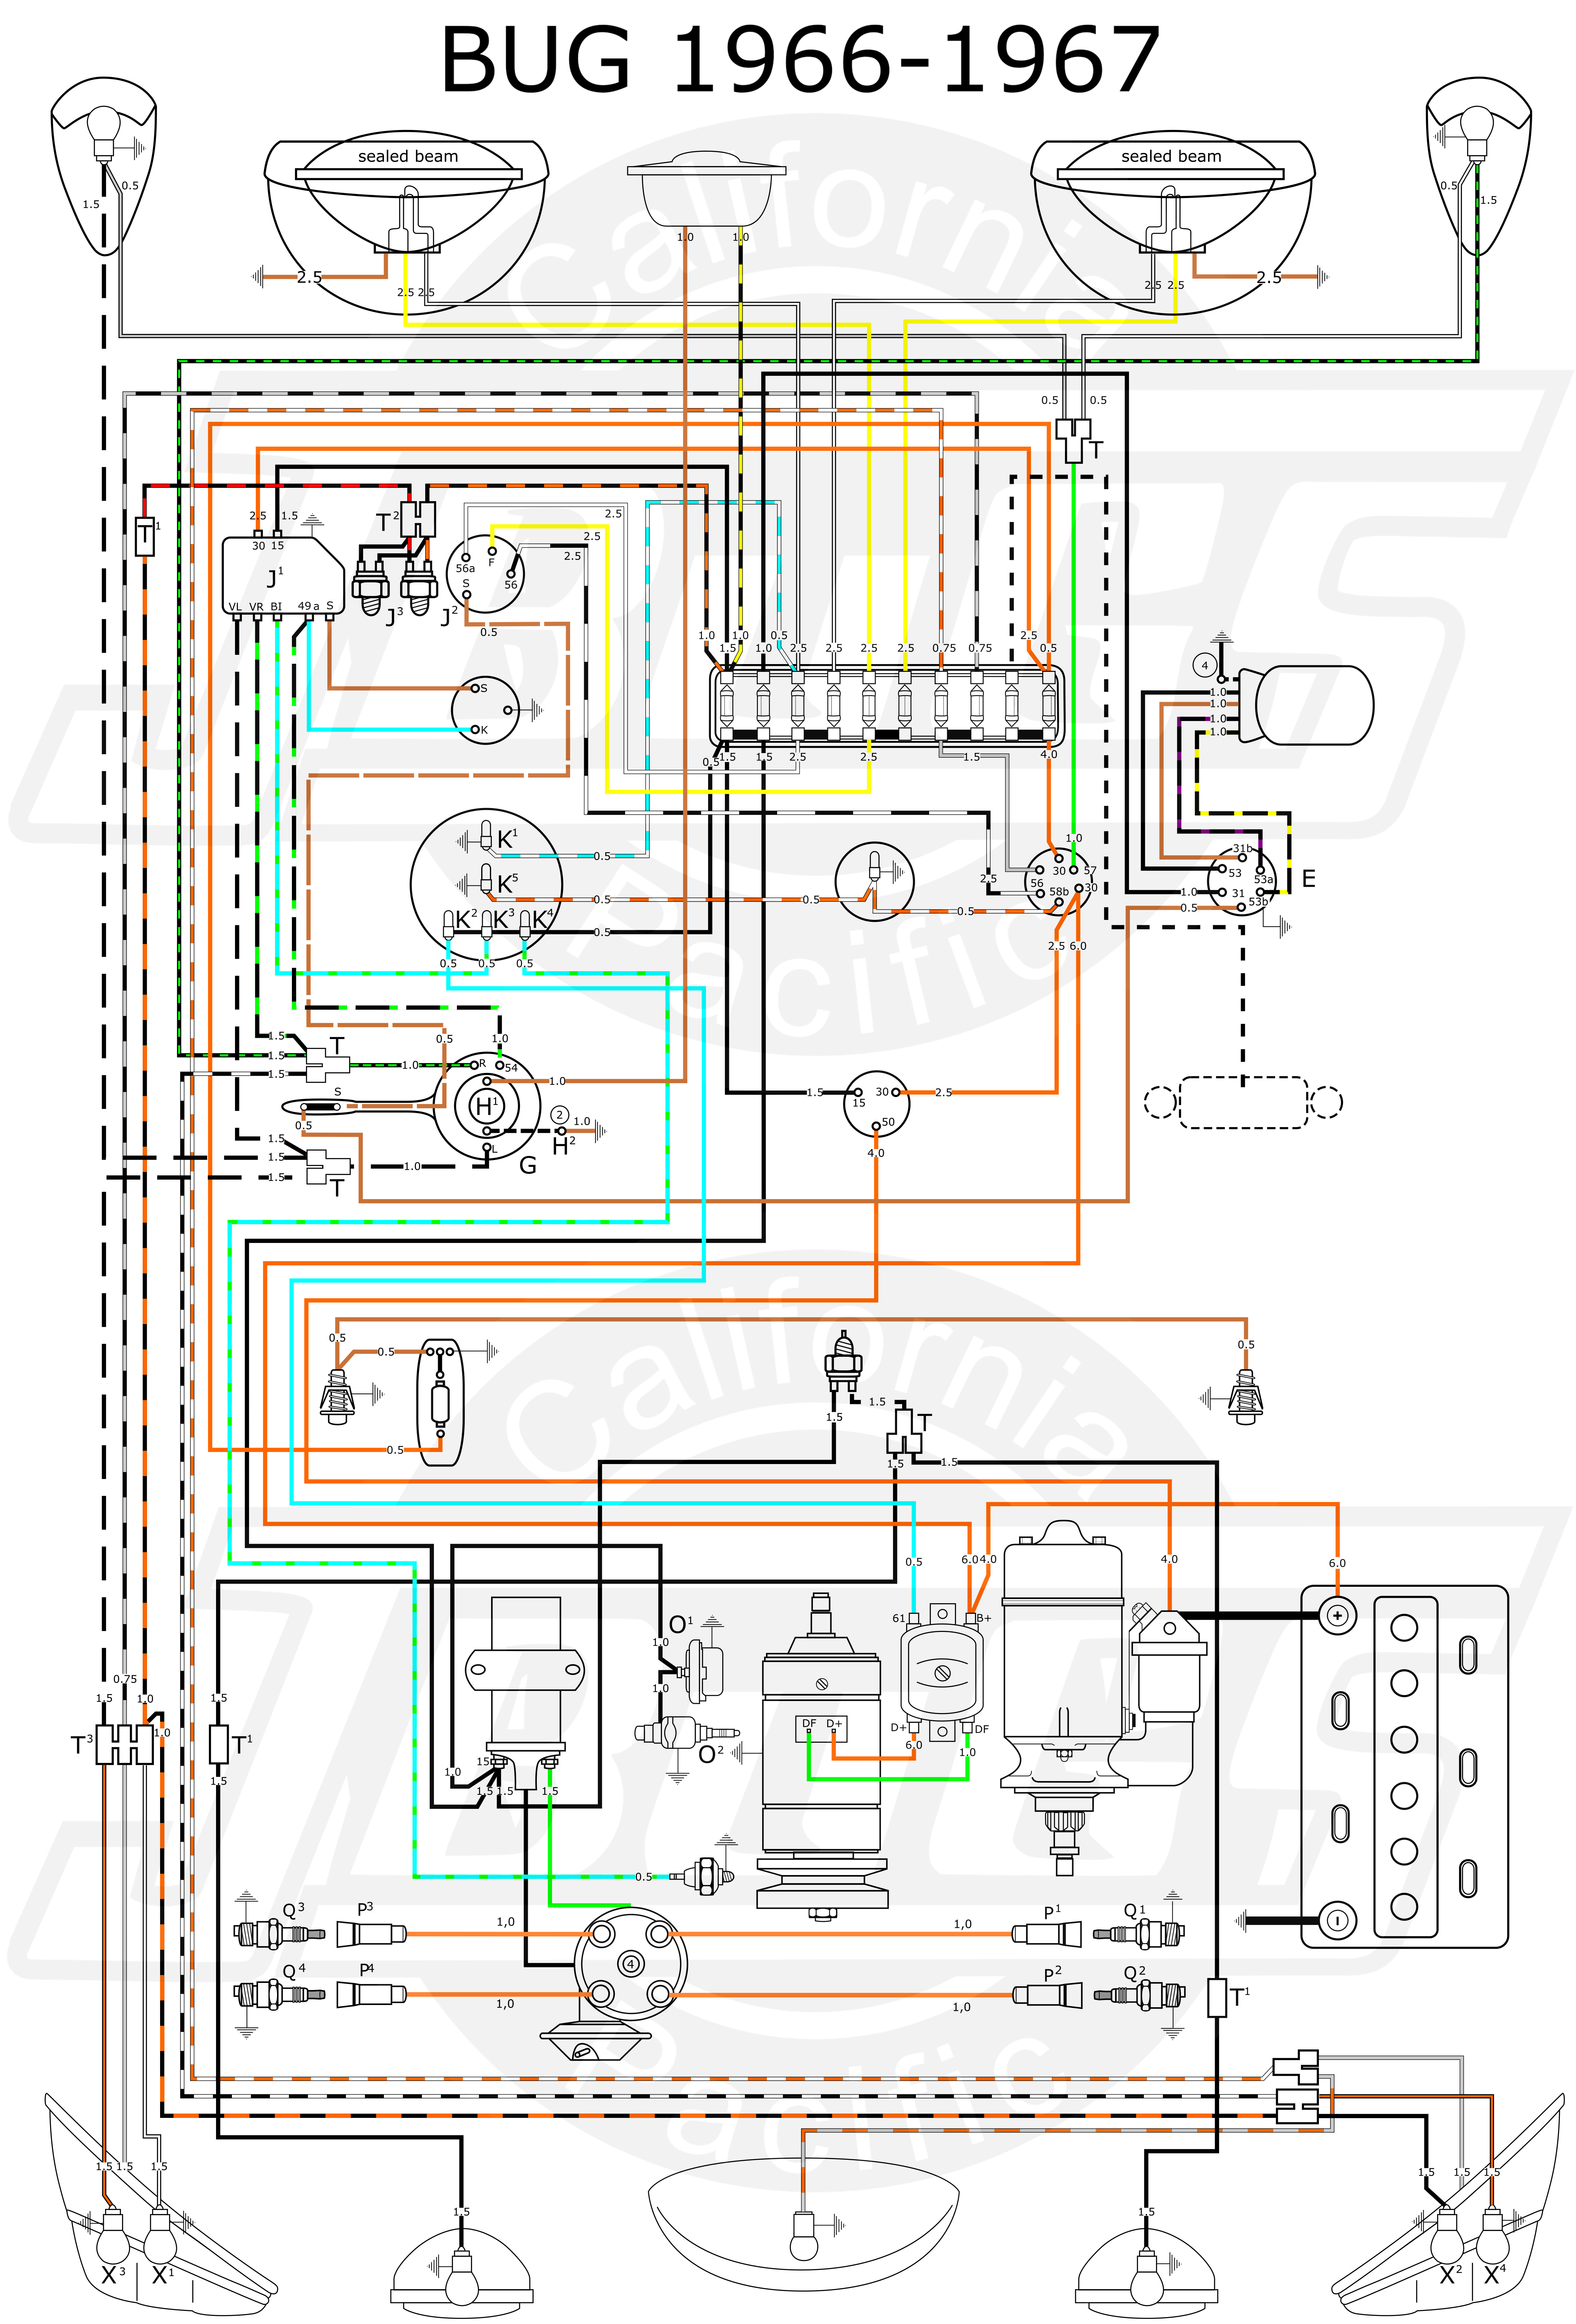 VW Bug 1966 67 Wiring Diagram datsun 510 wiring diagram datsun 510 voltage regulator wiring VW Beetle Voltage Regulator Wiring Diagram at honlapkeszites.co